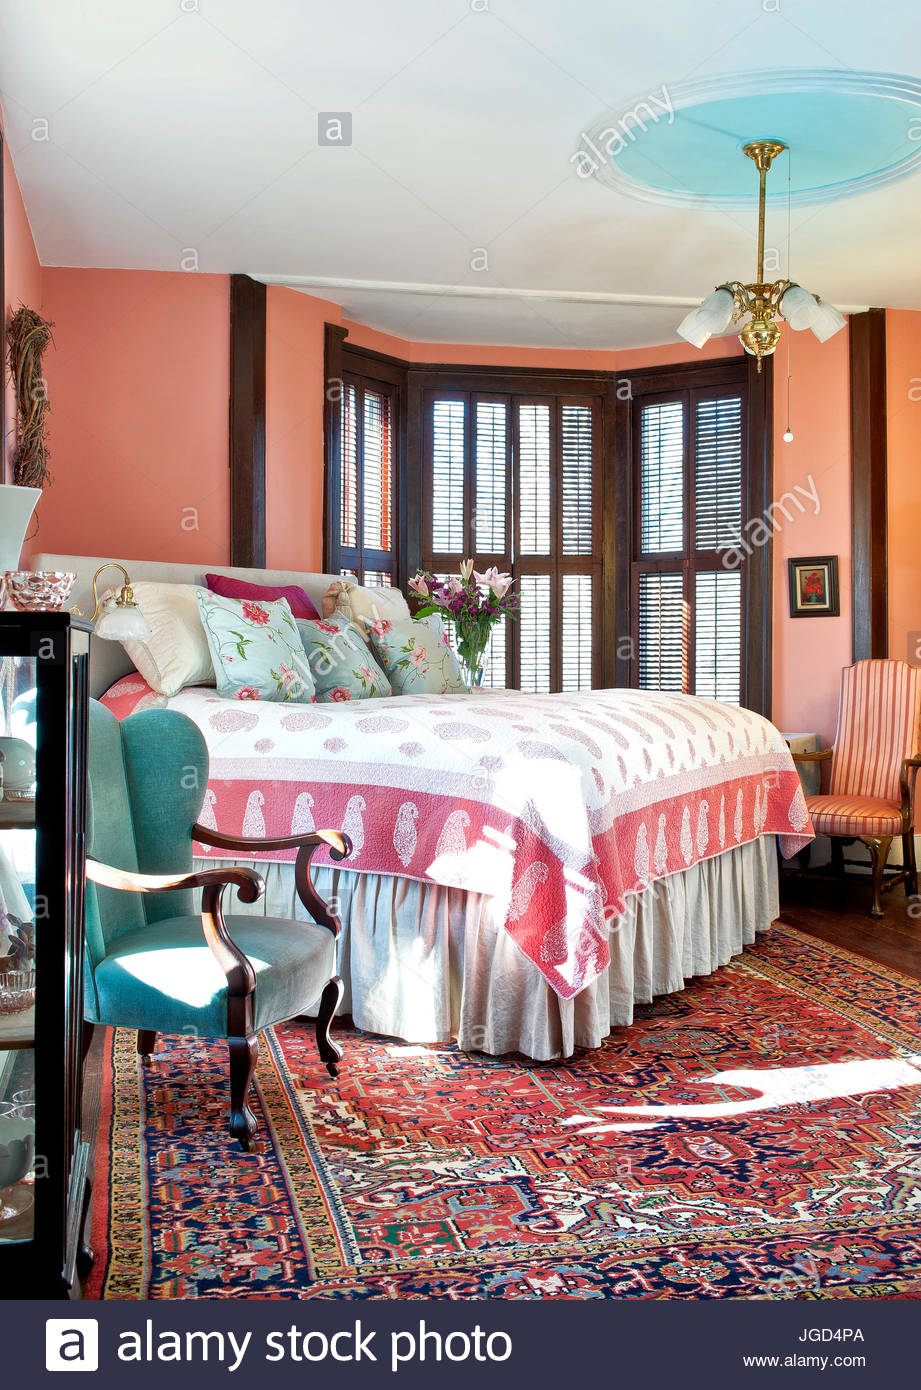 Bedroom With Salmon Colored Walls, Aqua Wing Back Chair, Oriental Rug,  Quilt, Period Chandelier, Interior Shutters, Bed Quilt, Flowers